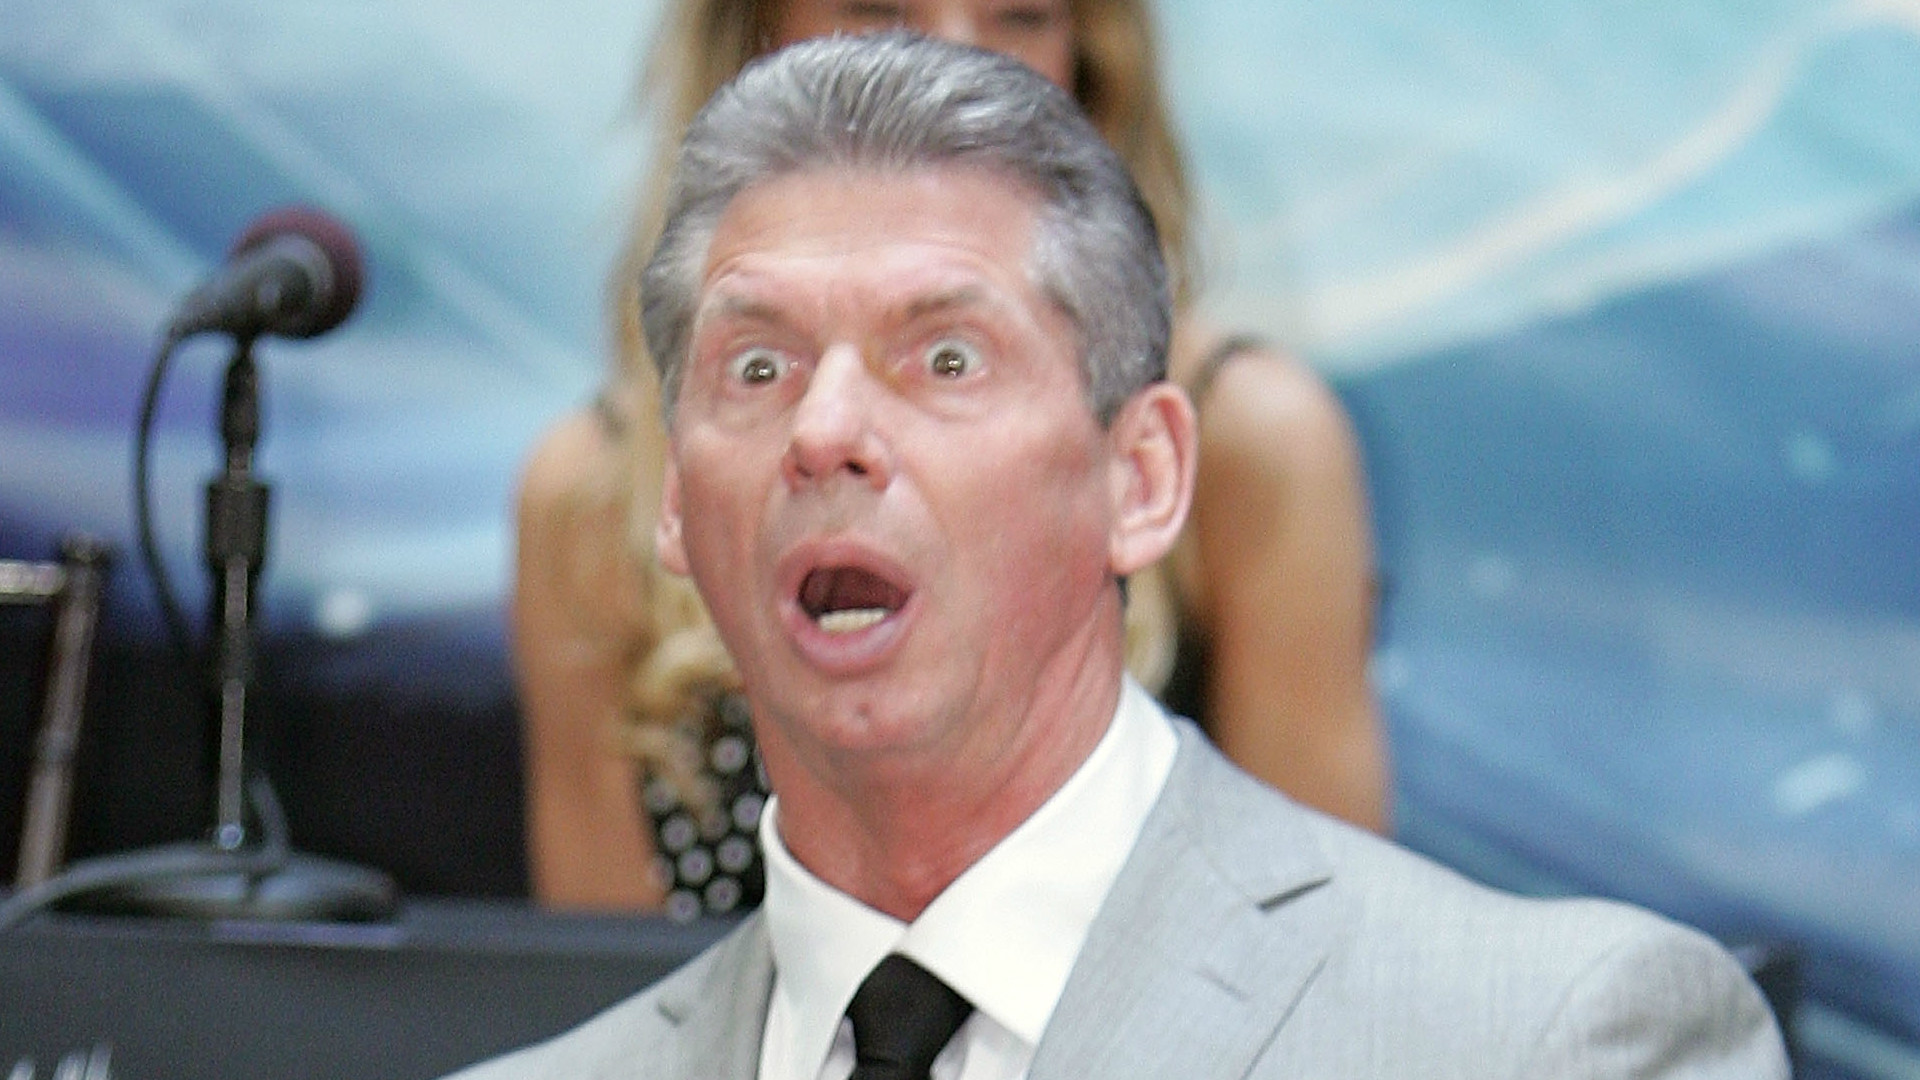 WWE's very own Vince McMahon.